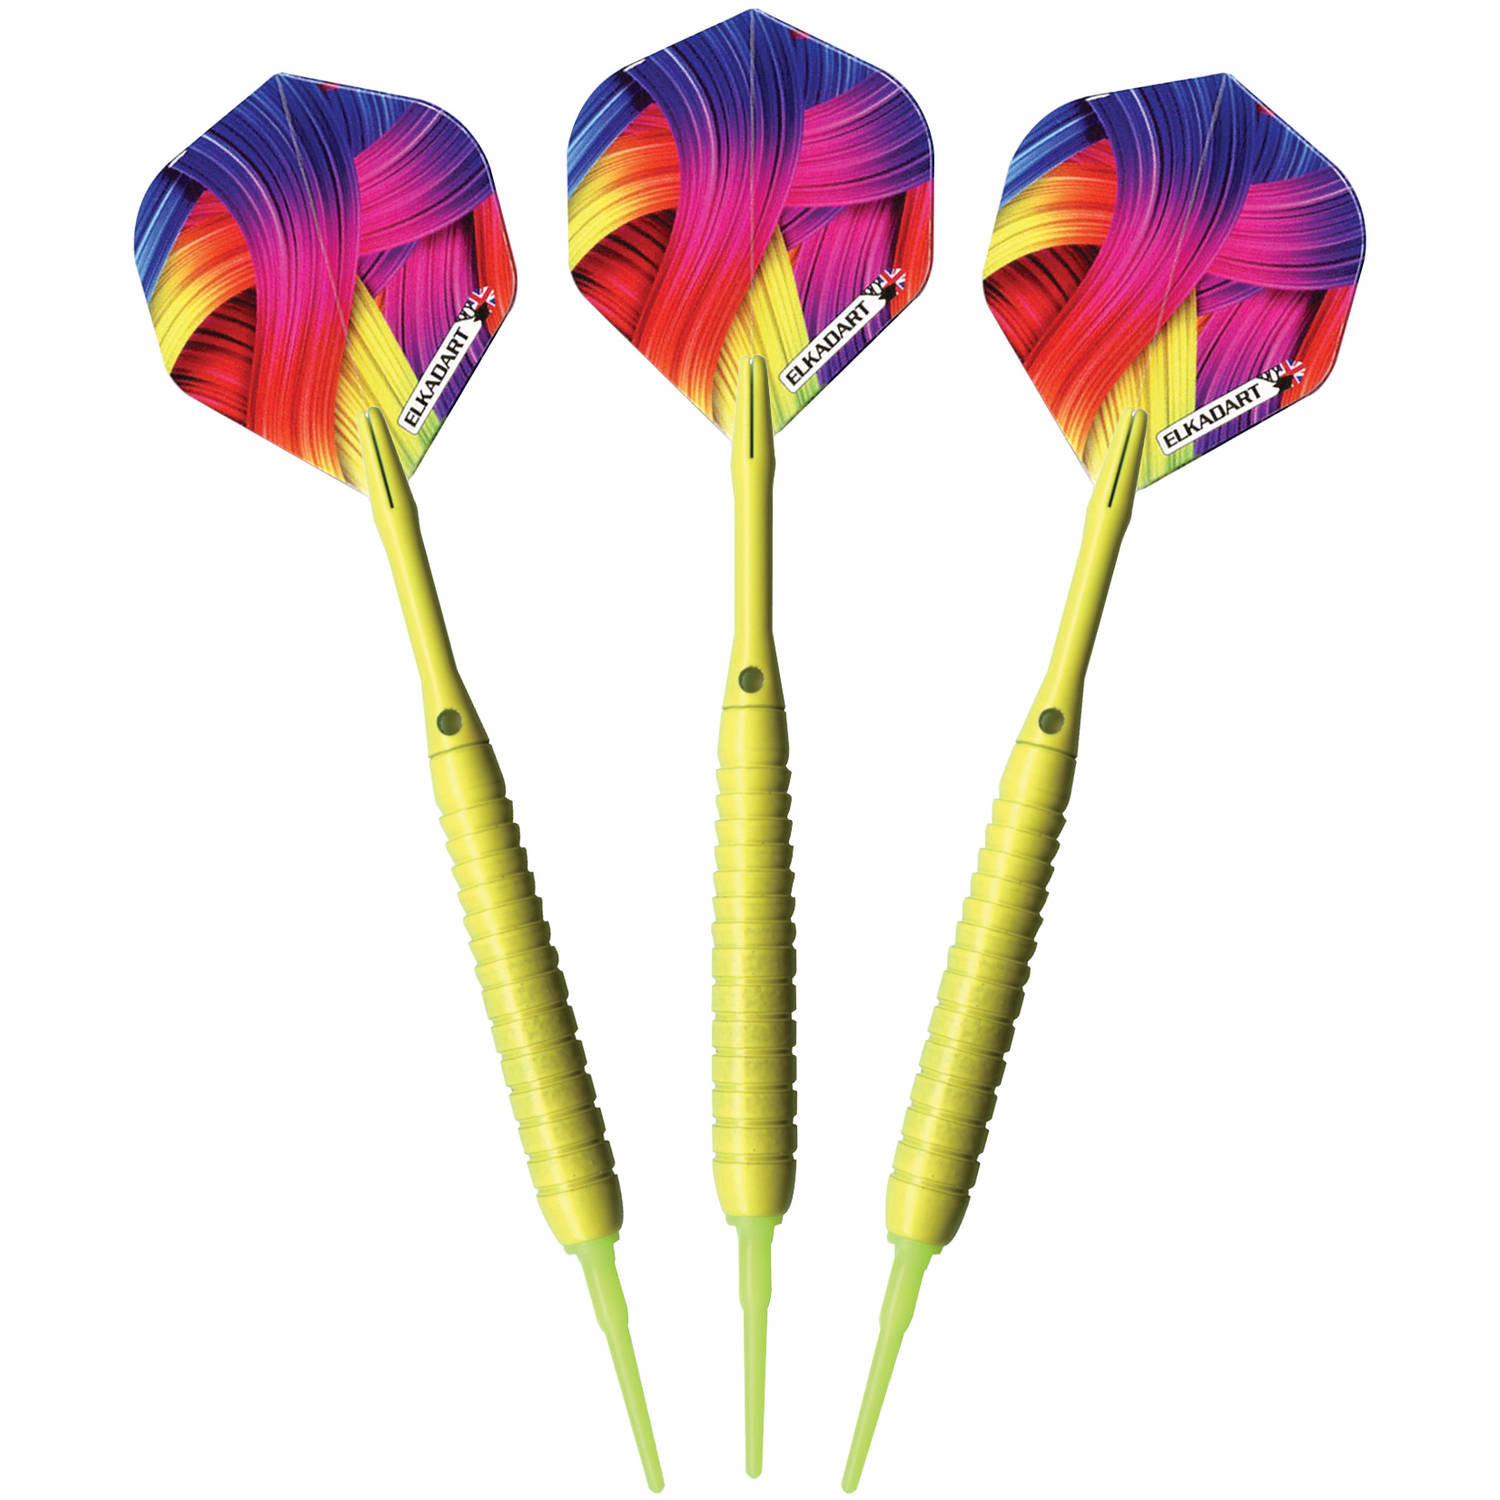 Elkadart Neon Yellow Soft Tip Darts, 18g